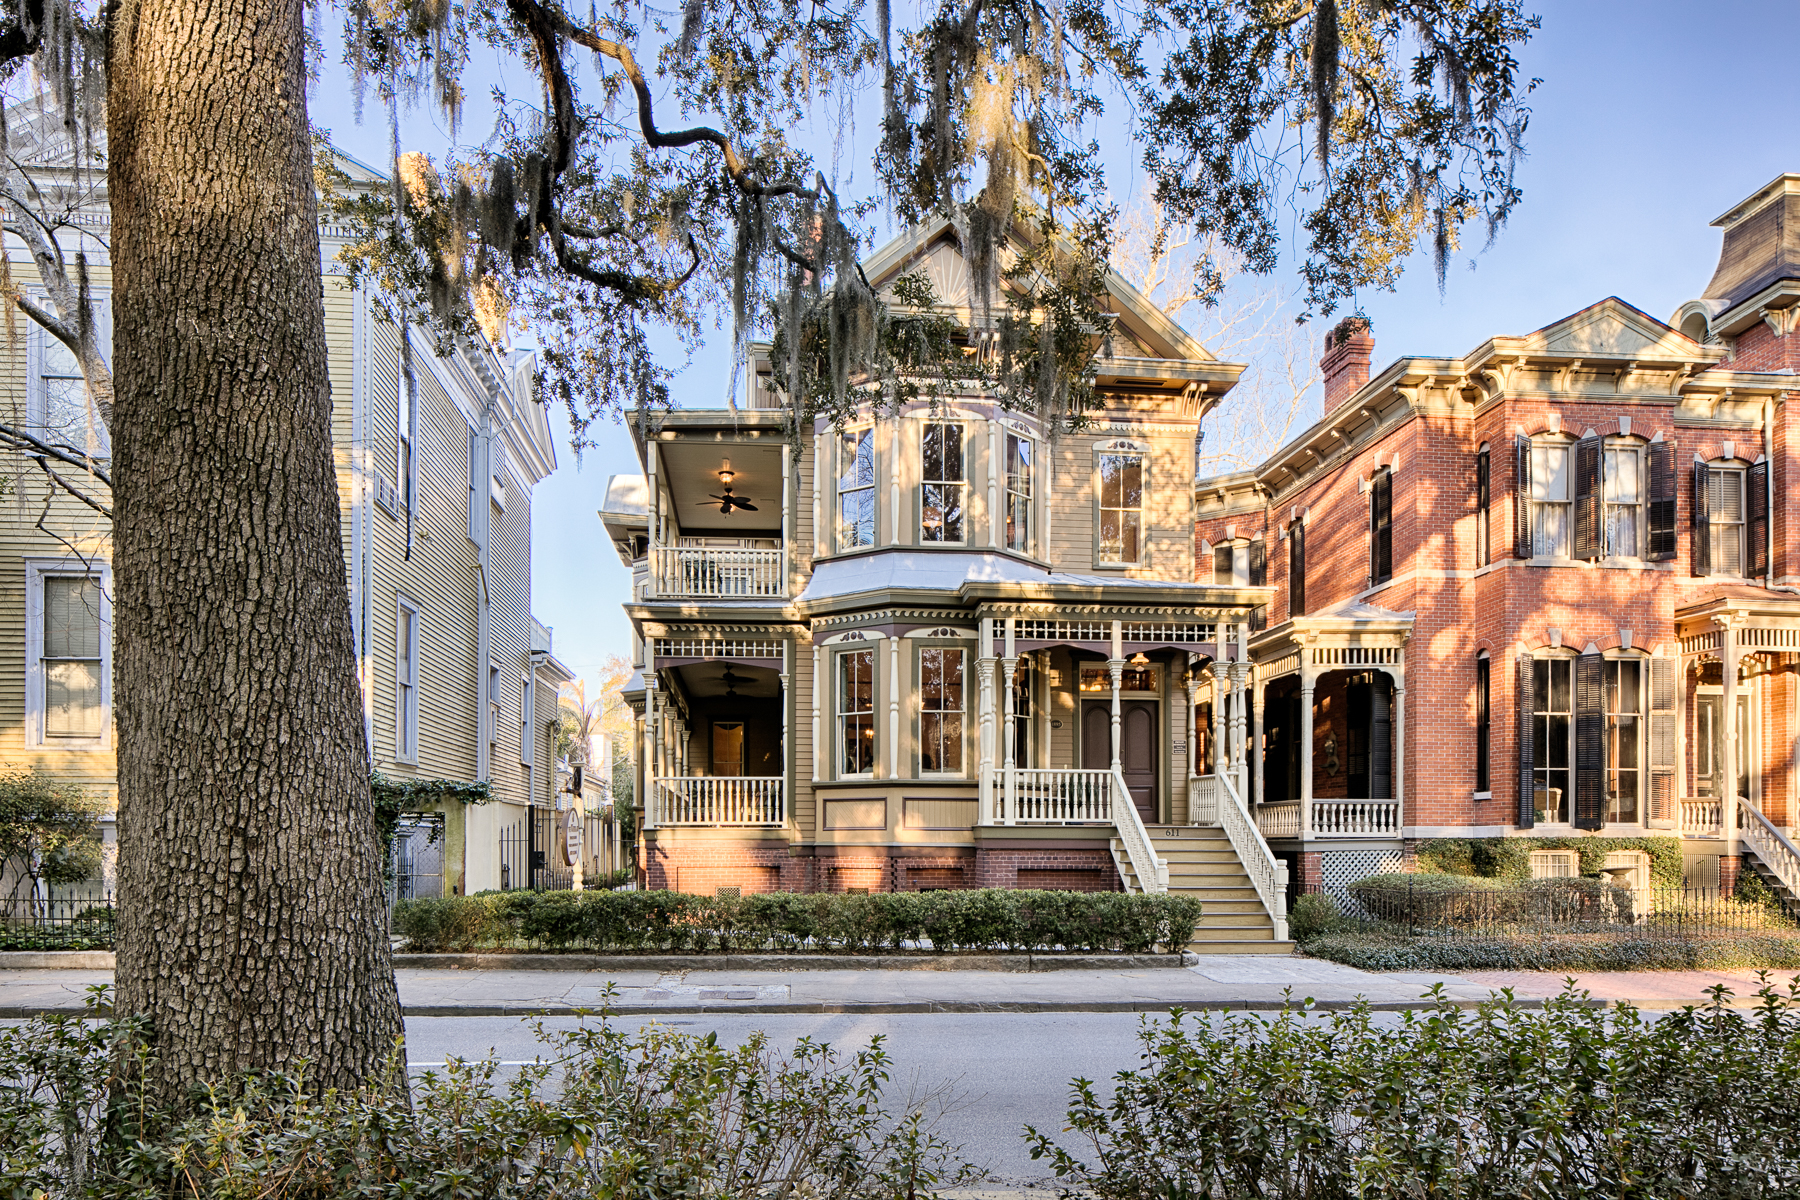 Single Family Home for Sale at Crowther Mansion 611 Whitaker Street Savannah, Georgia 31401 United States